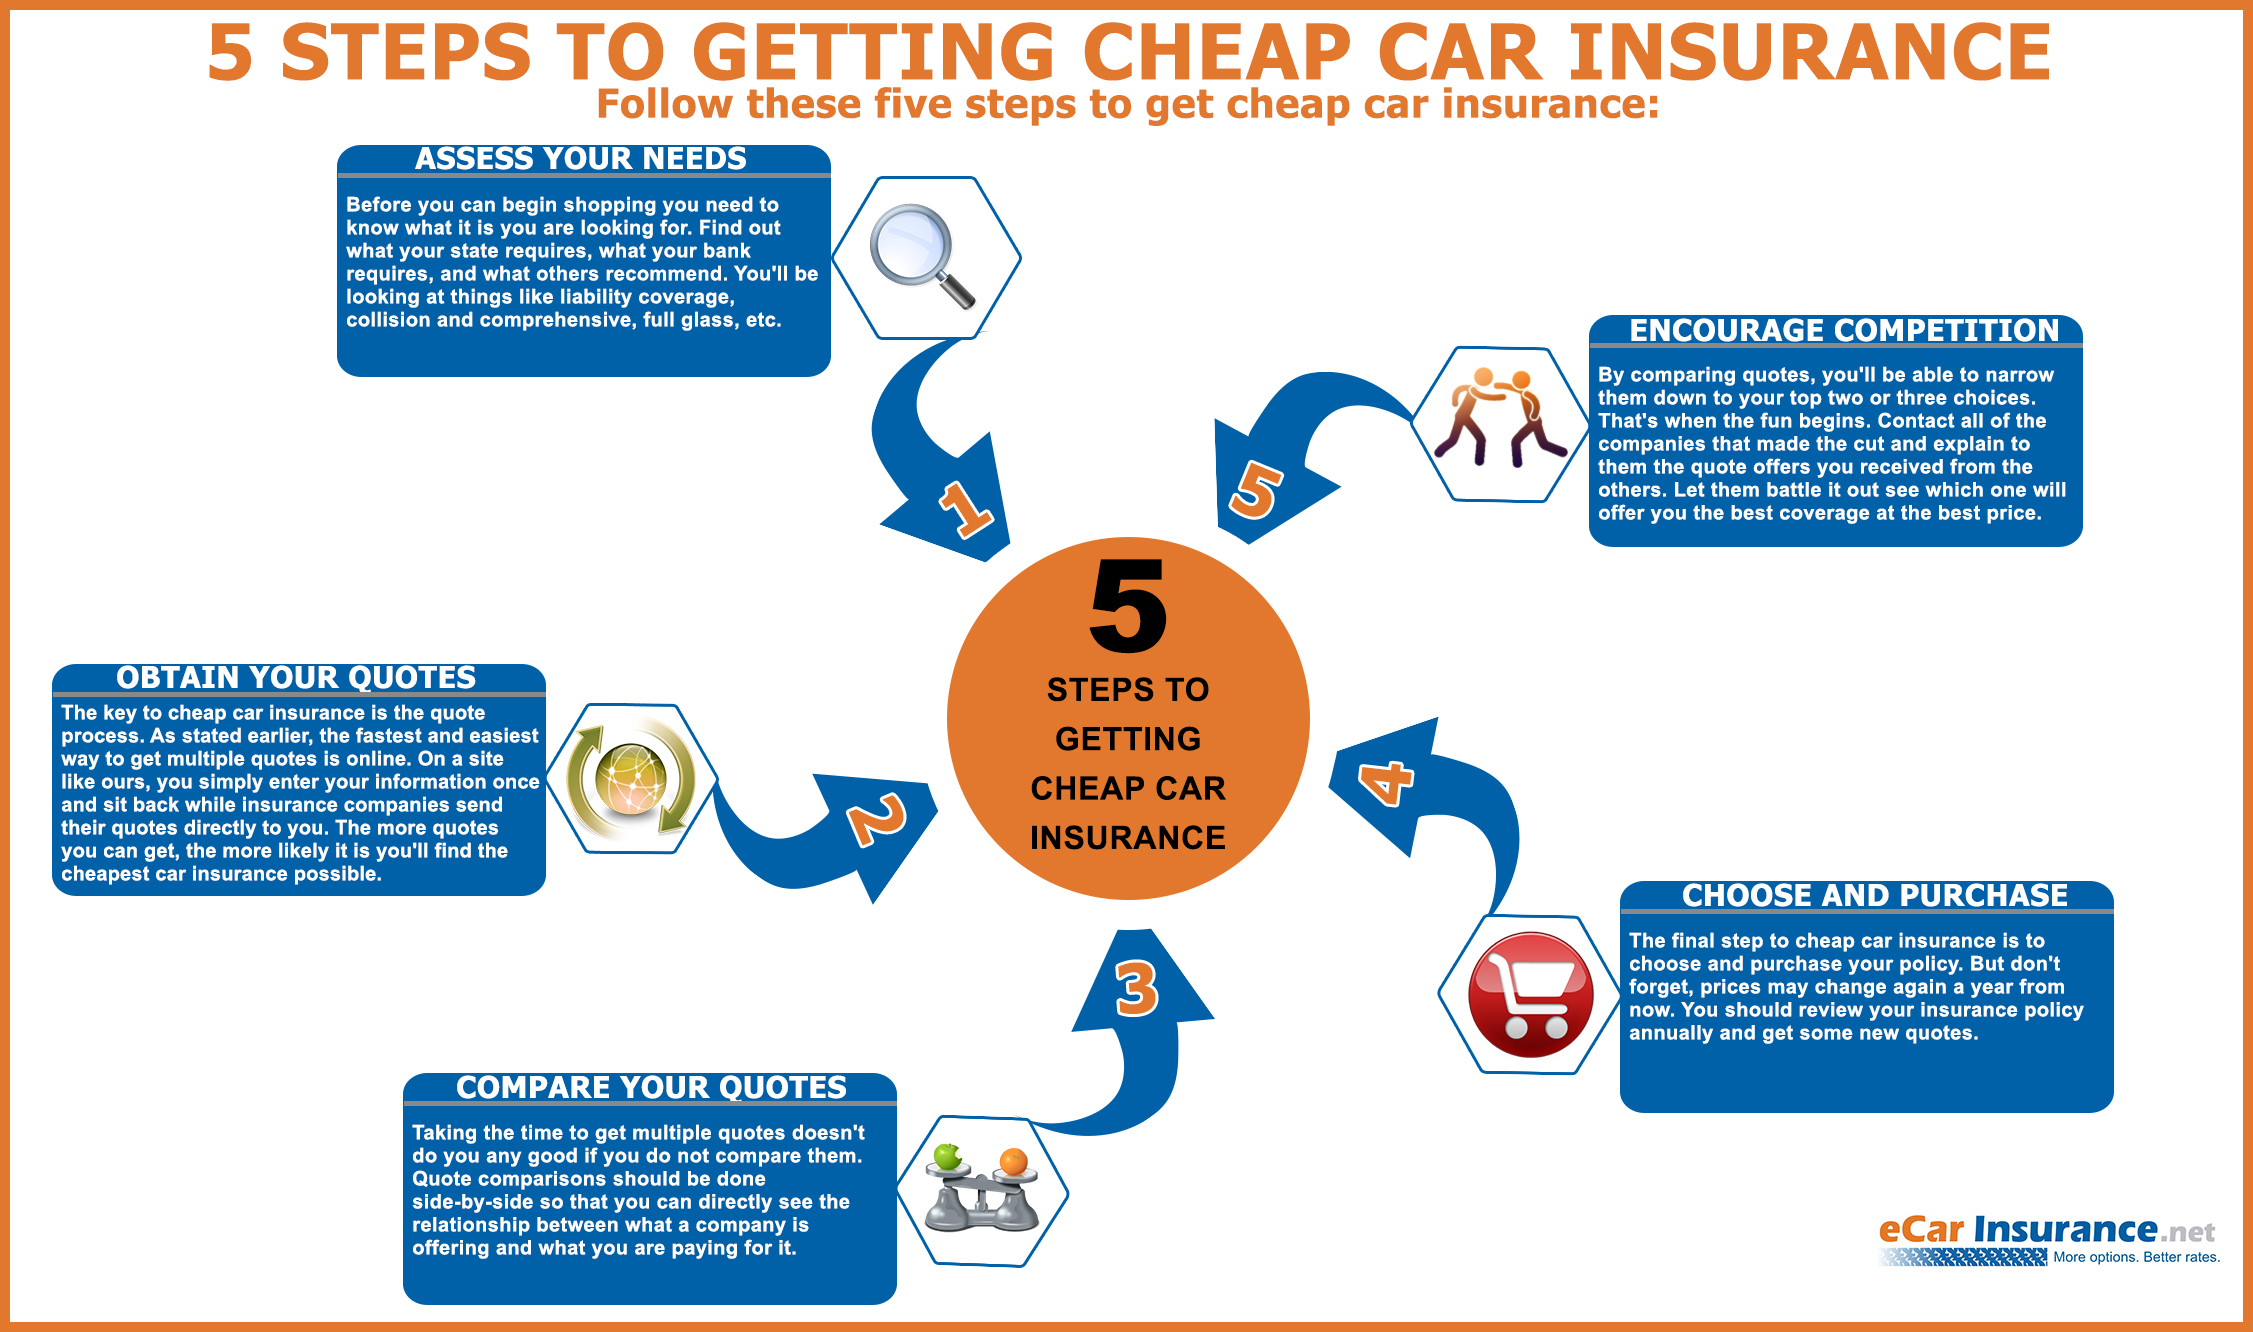 to get cheap car insurance in usa